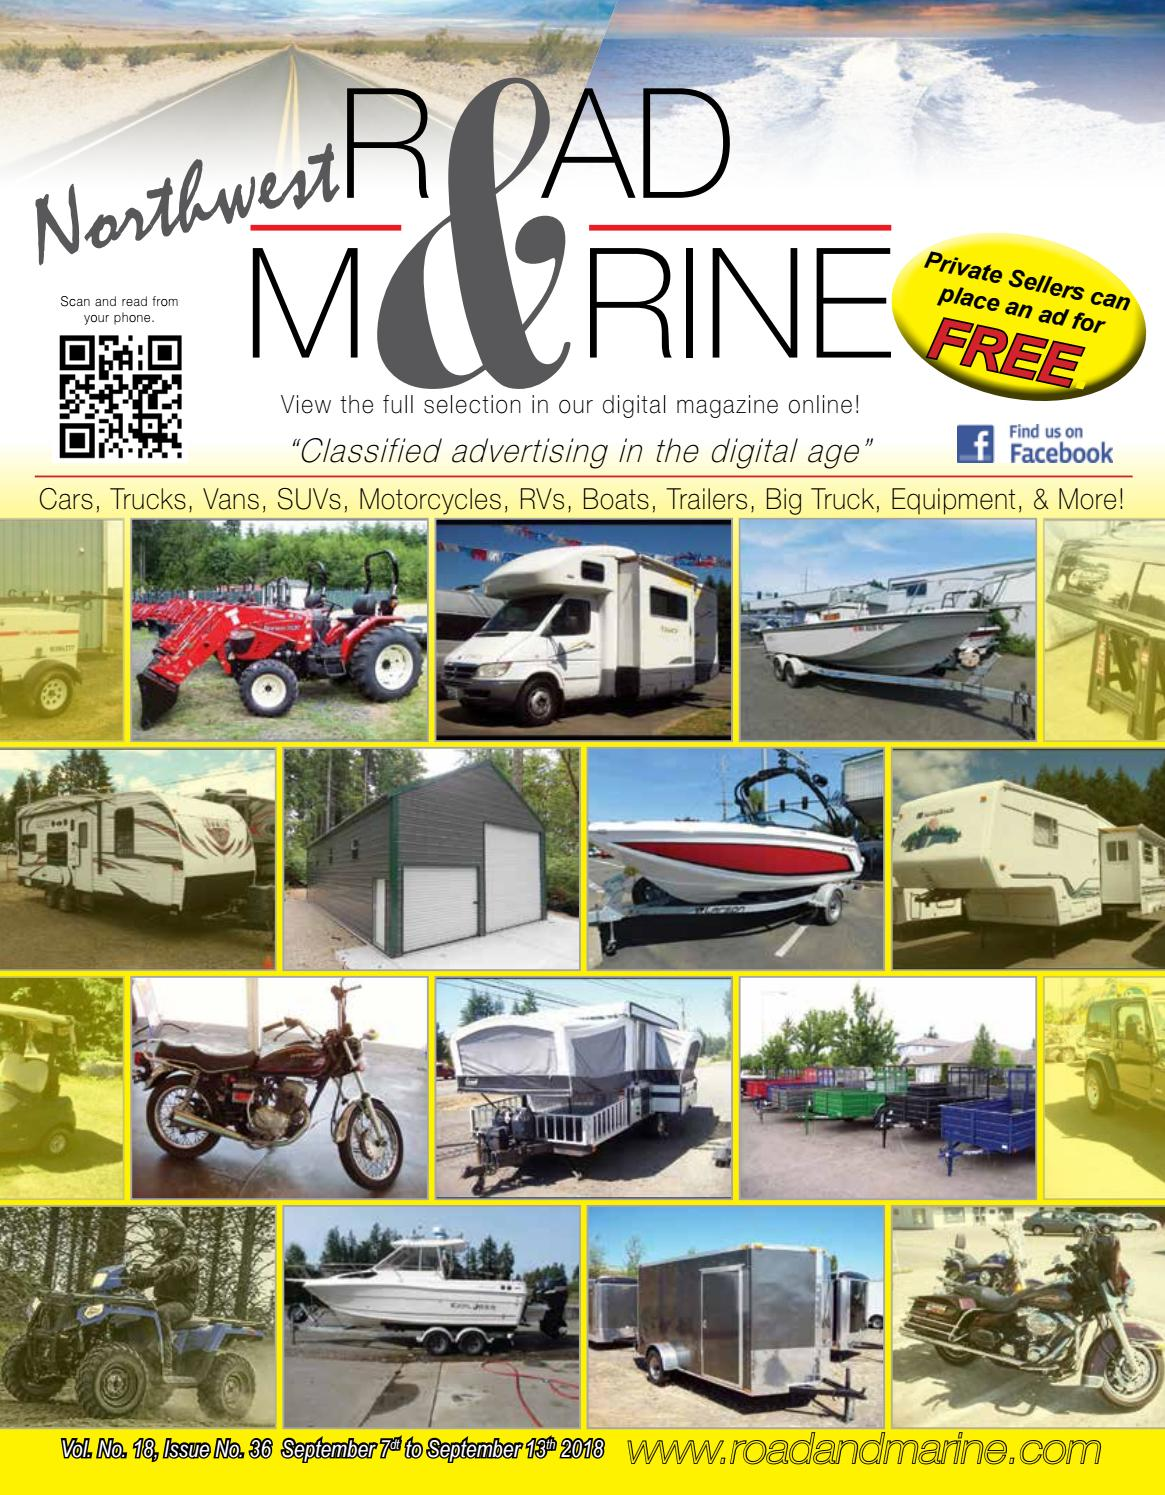 Road and Marine Magazine Vol 18 #36 by Road & Marine